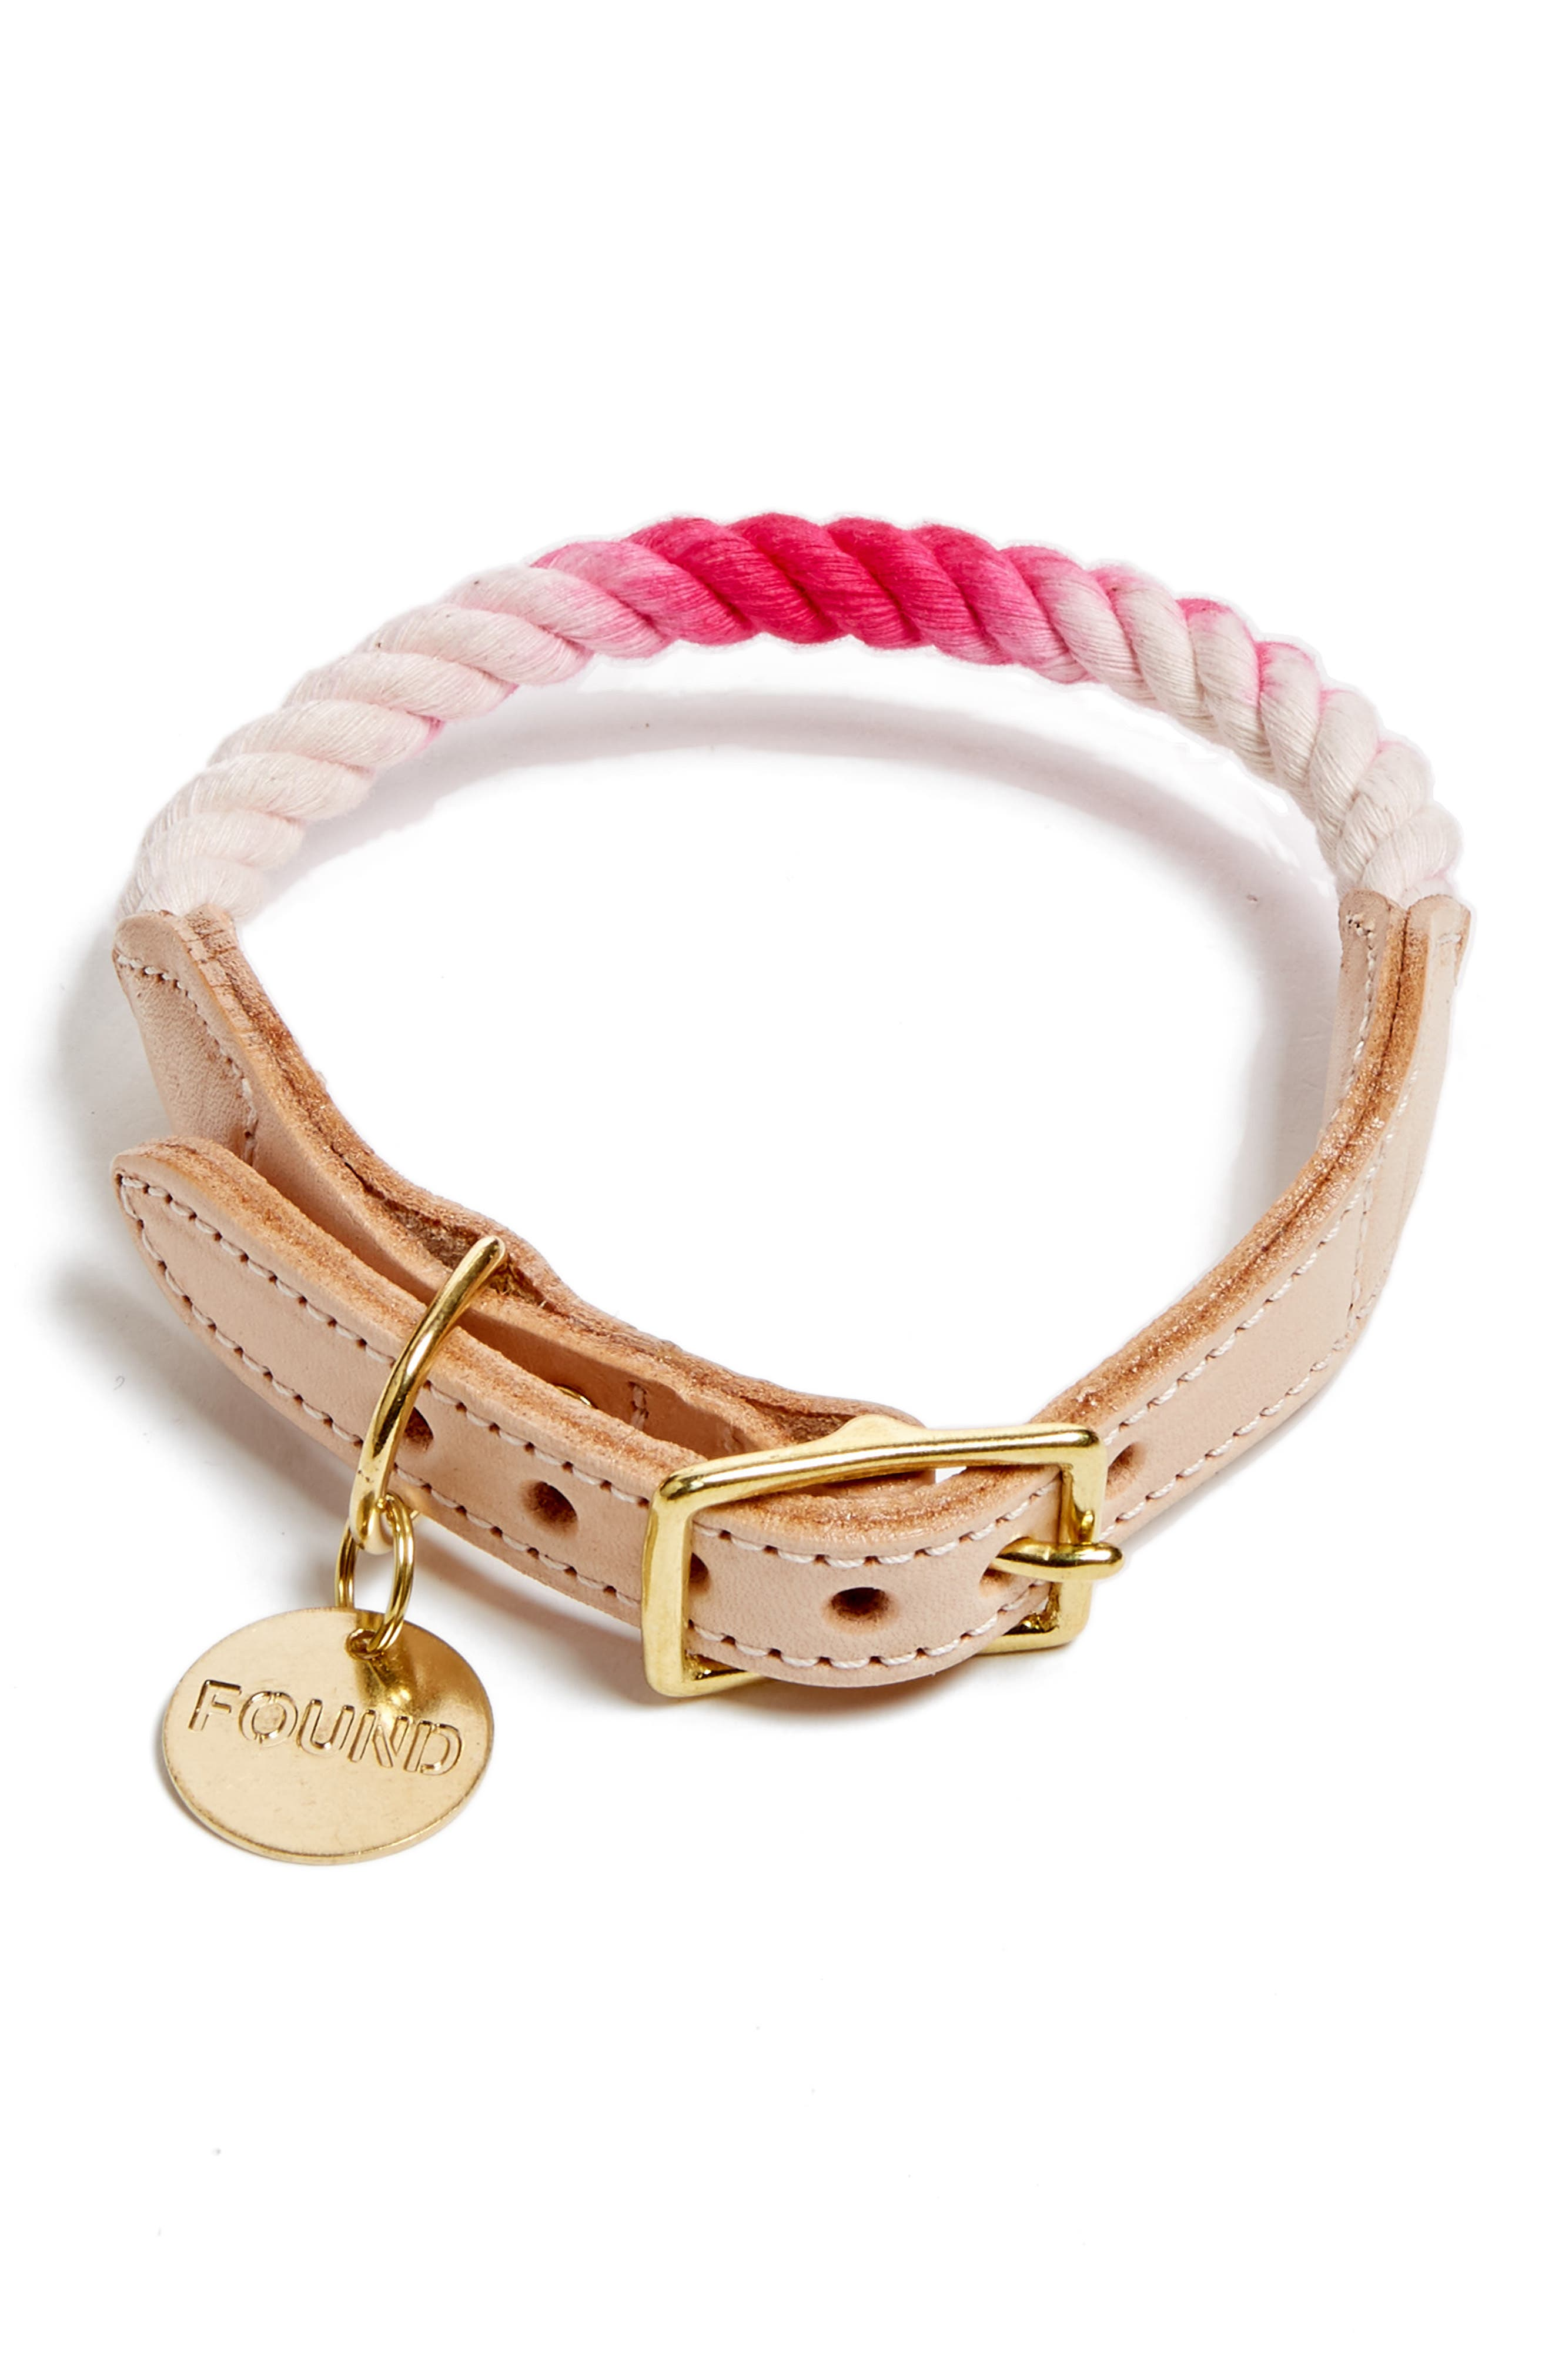 Rope & Leather Pet Collar,                             Main thumbnail 1, color,                             600